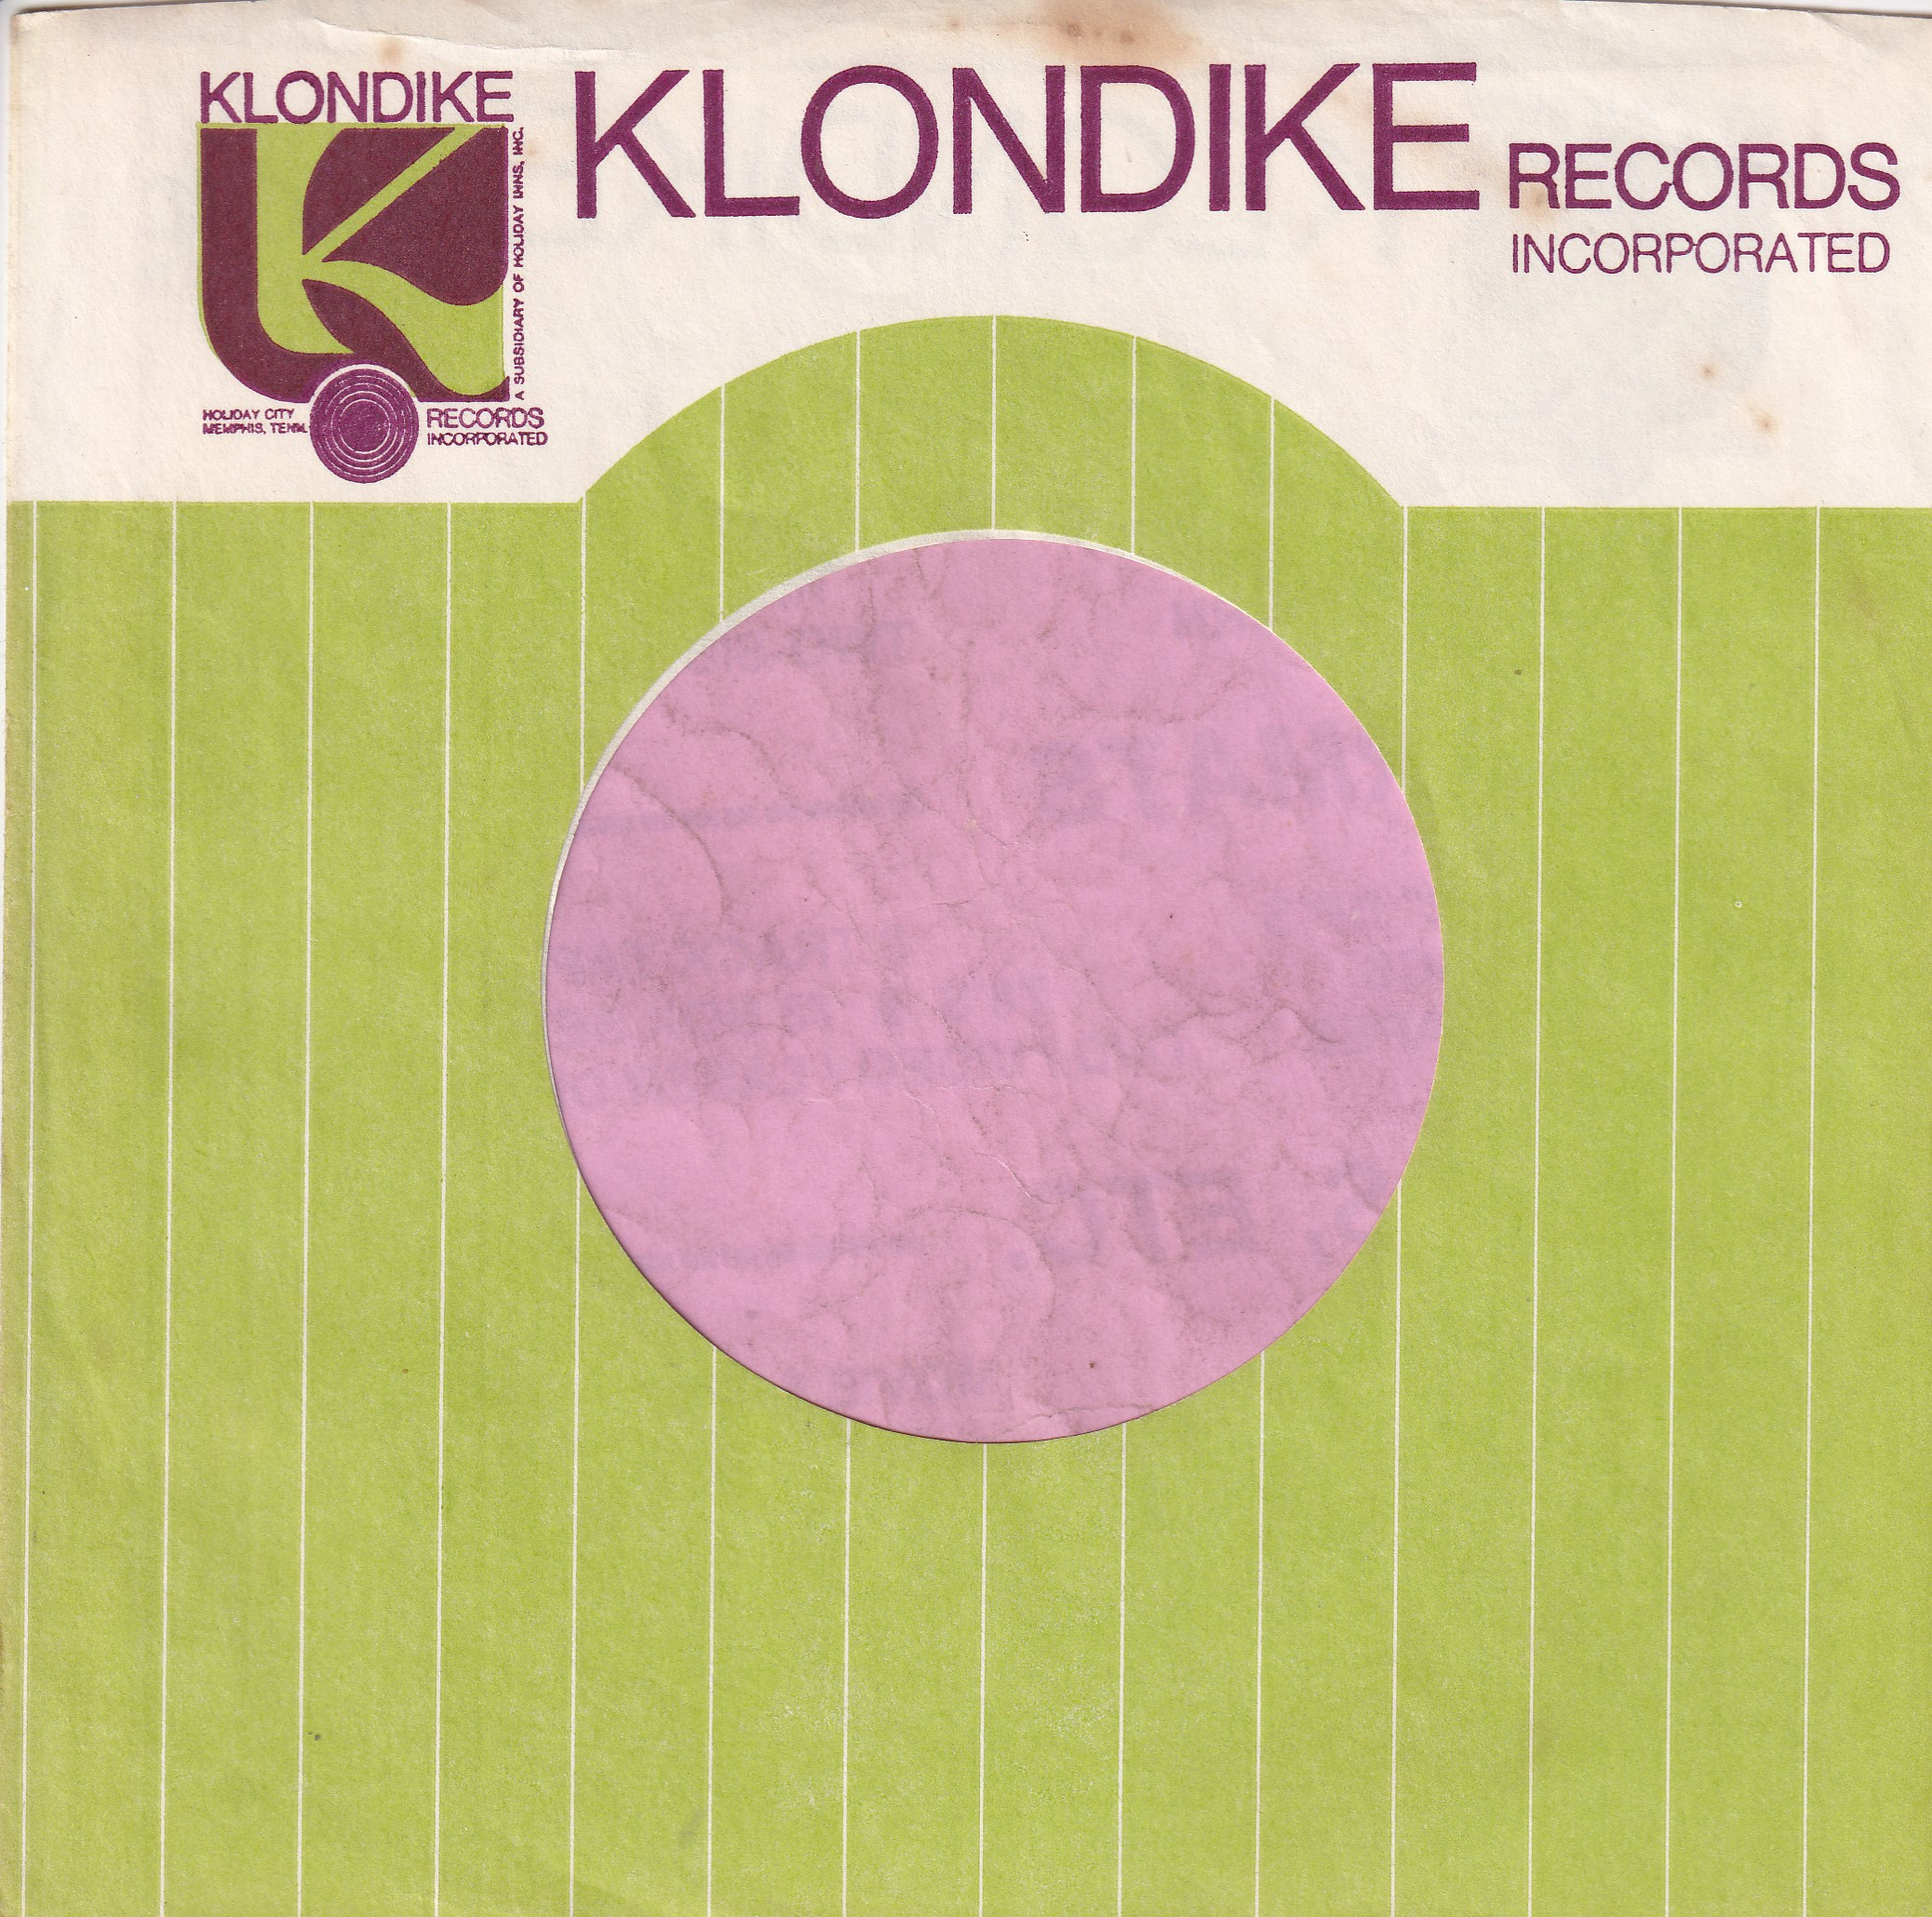 Klondike Records U.S.A. Purple Print Company Sleeve 1960's